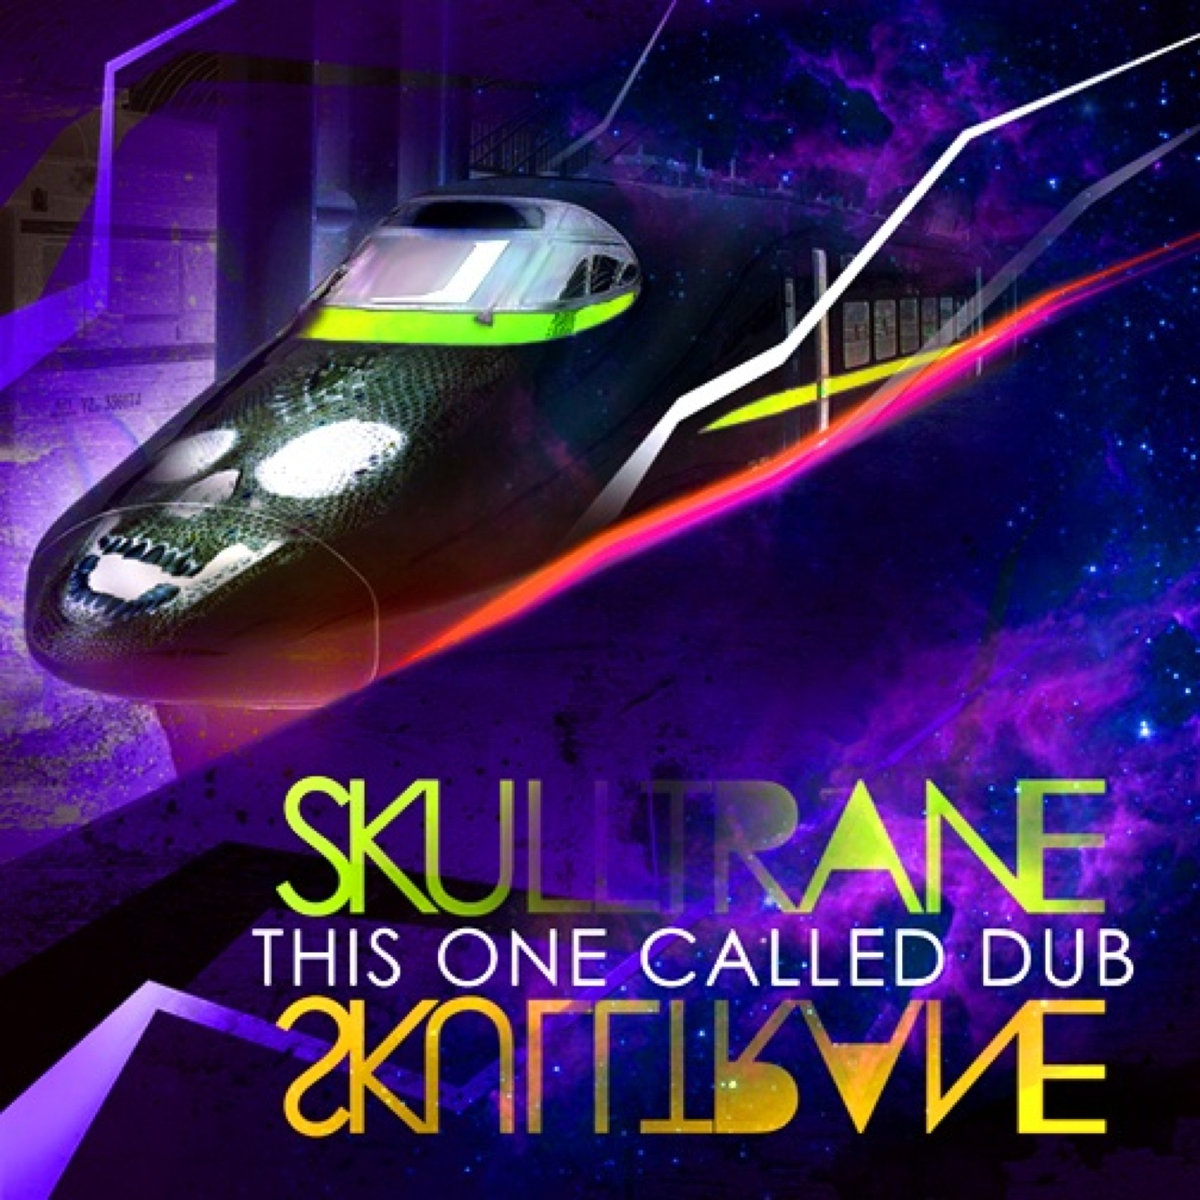 Skulltrane - This One Called Dub @ 'This One Called Dub' album (electronic, dubstep)